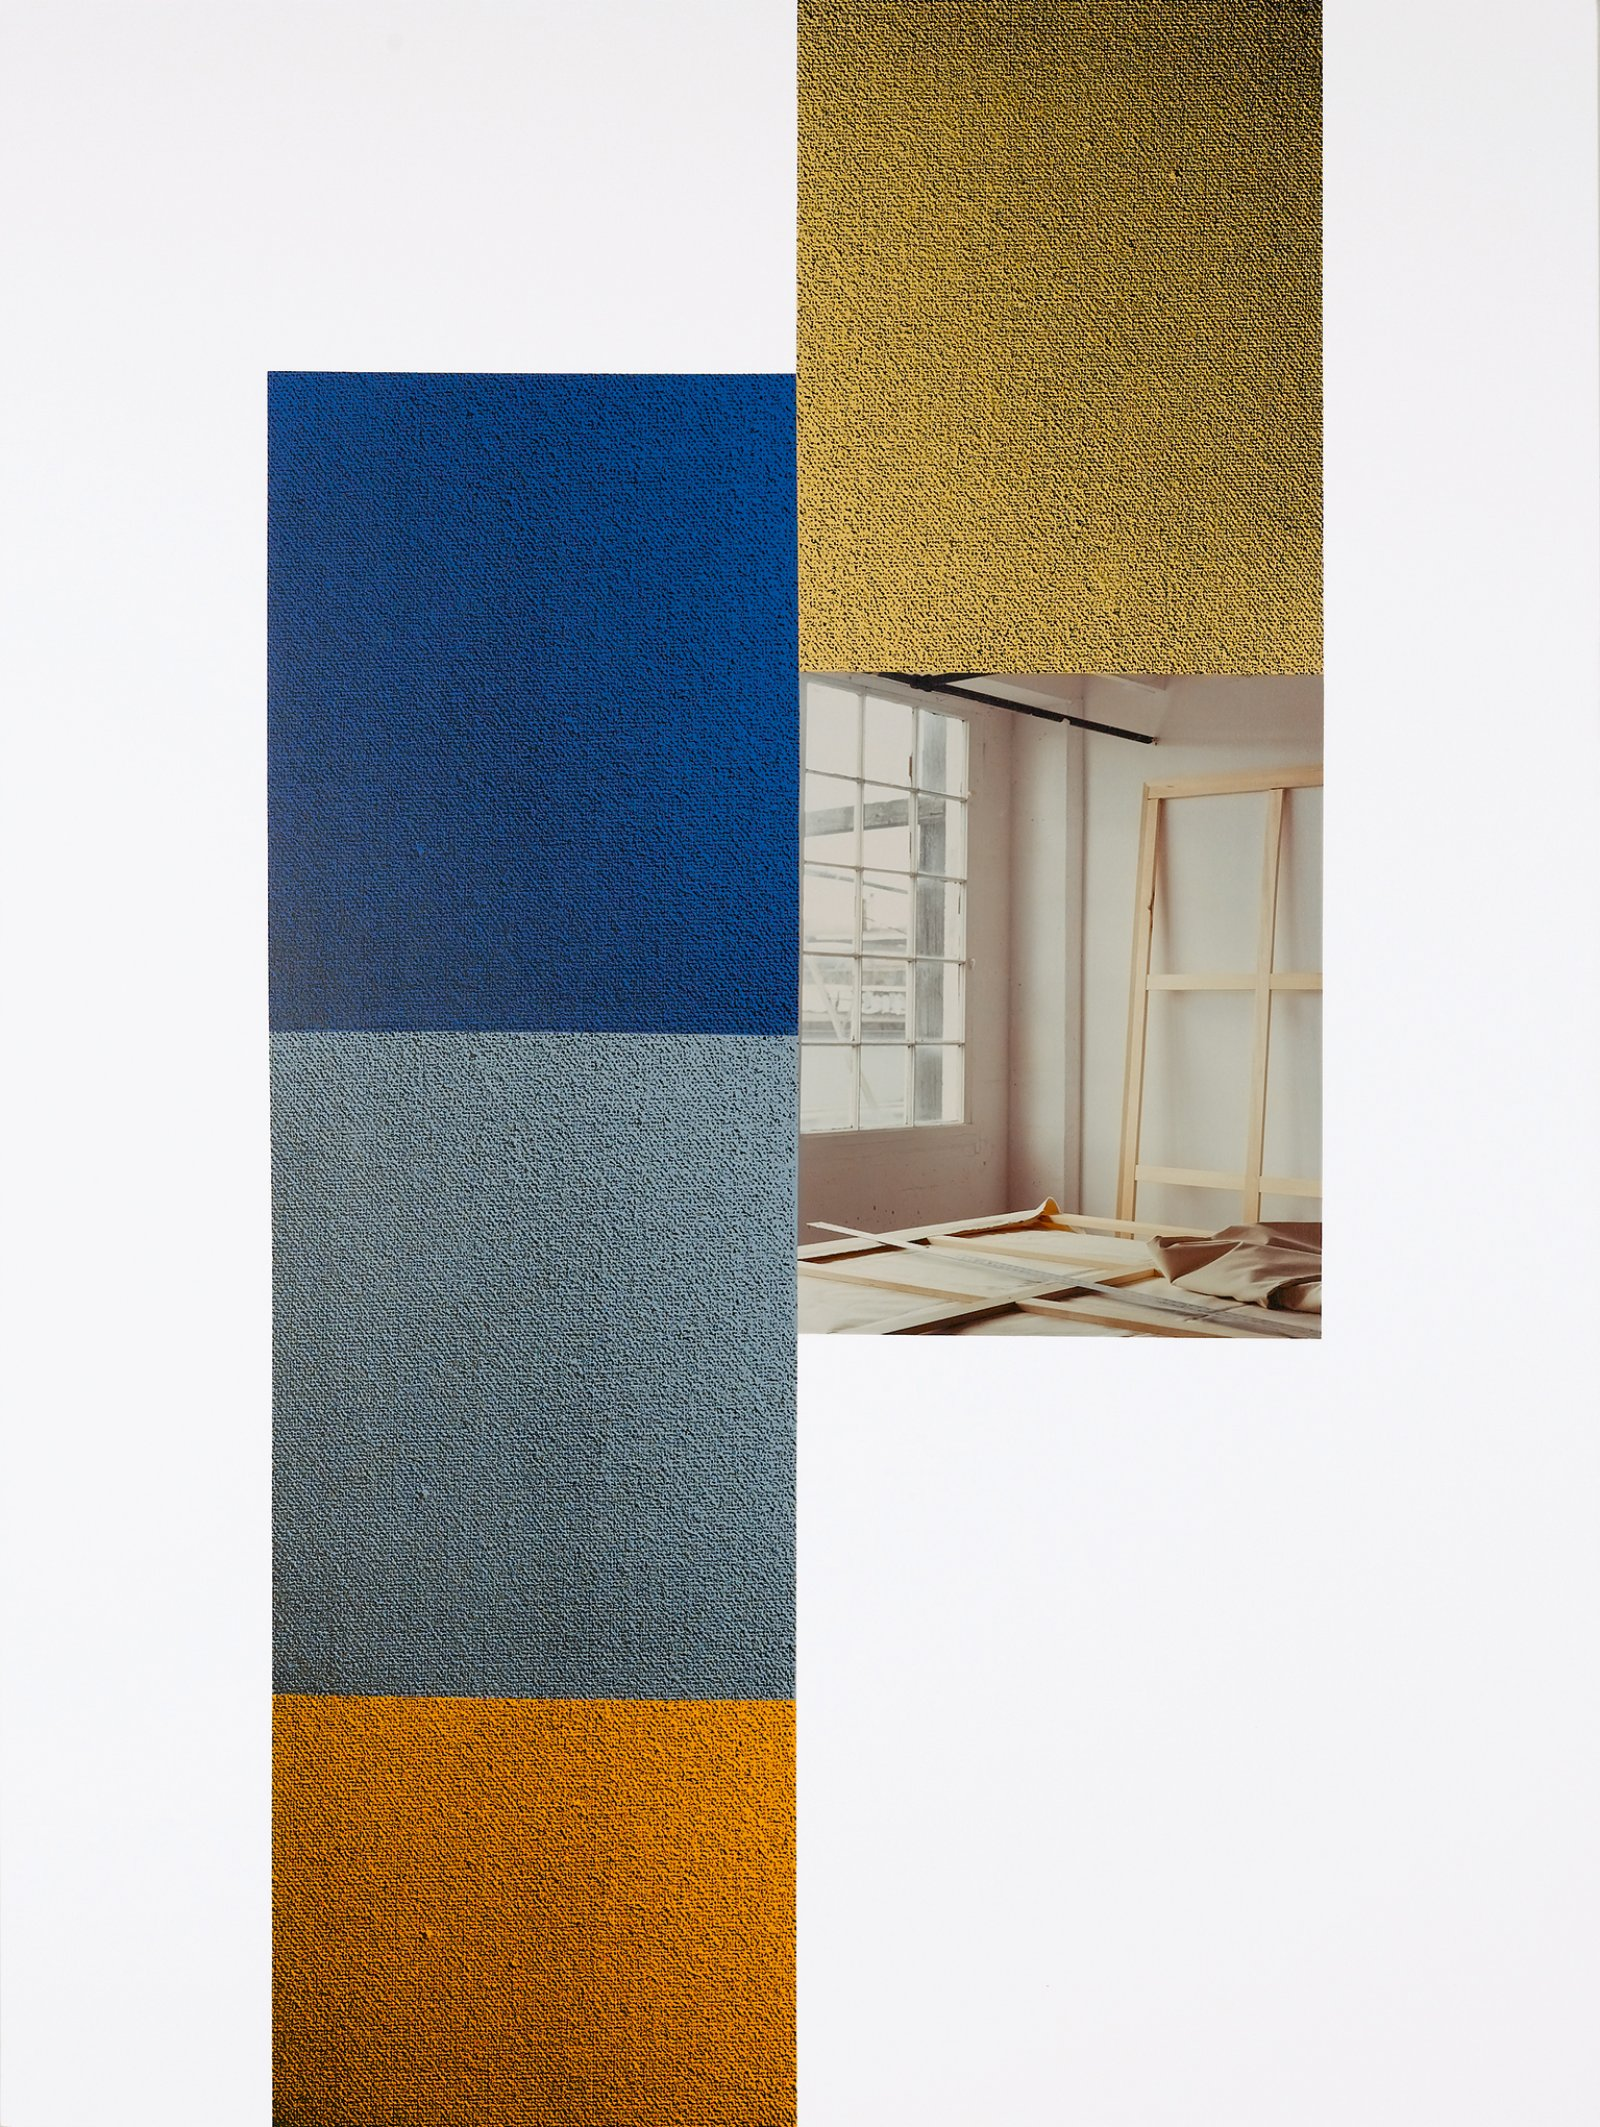 Ian Wallace, In the Studio 98 I & II, 1998, monoprint, acrylic, photolaminate and ink on canvas, 96 x 72 in. (244 x 183 cm). Installation view, A Literature of Images, Kunsthalle Zürich, 2008 by Ian Wallace